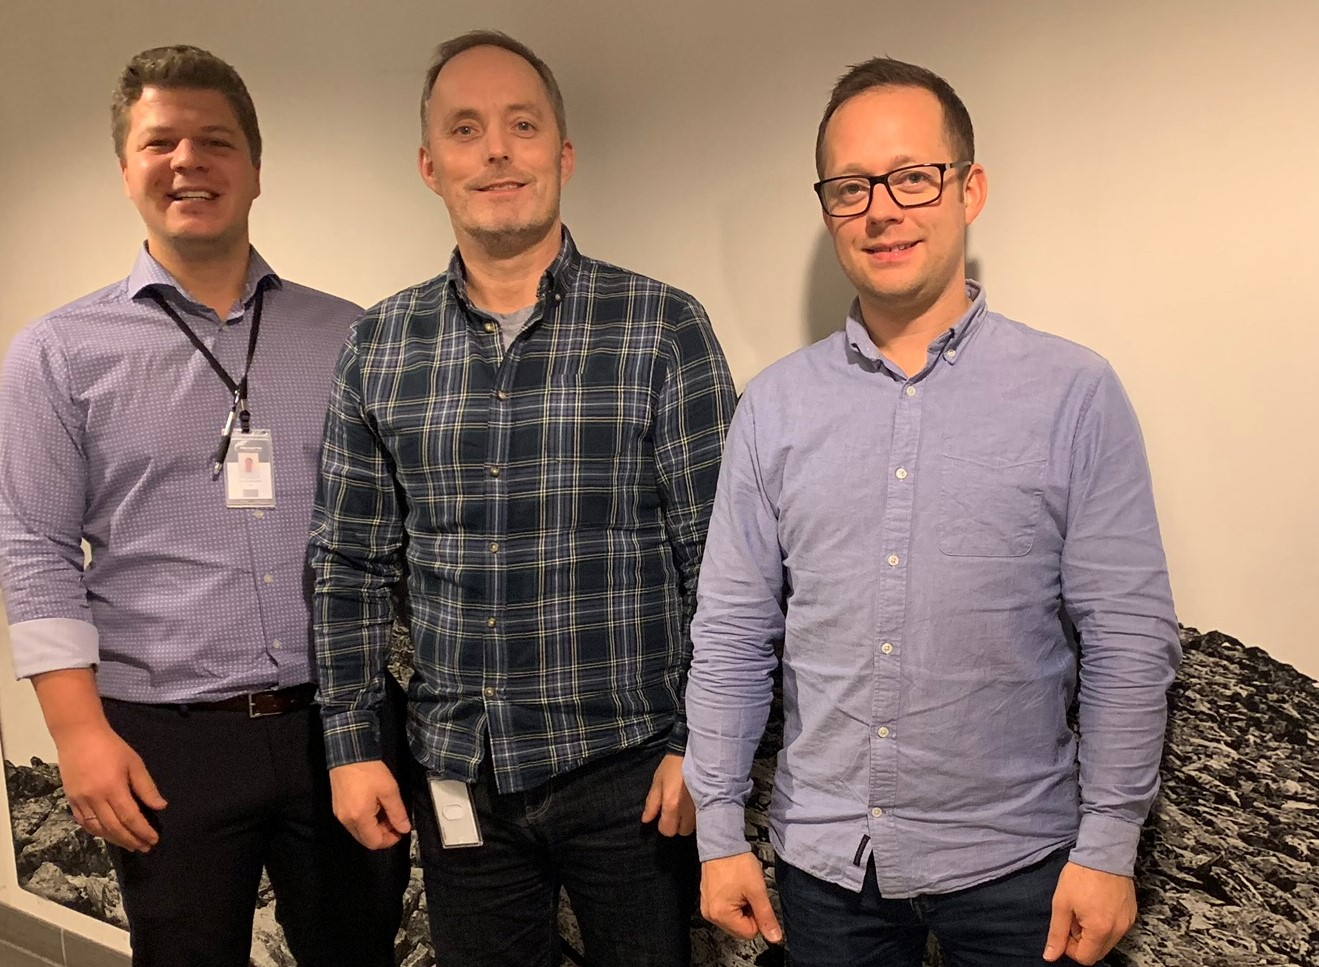 Three new hires at Norautron's head office during November